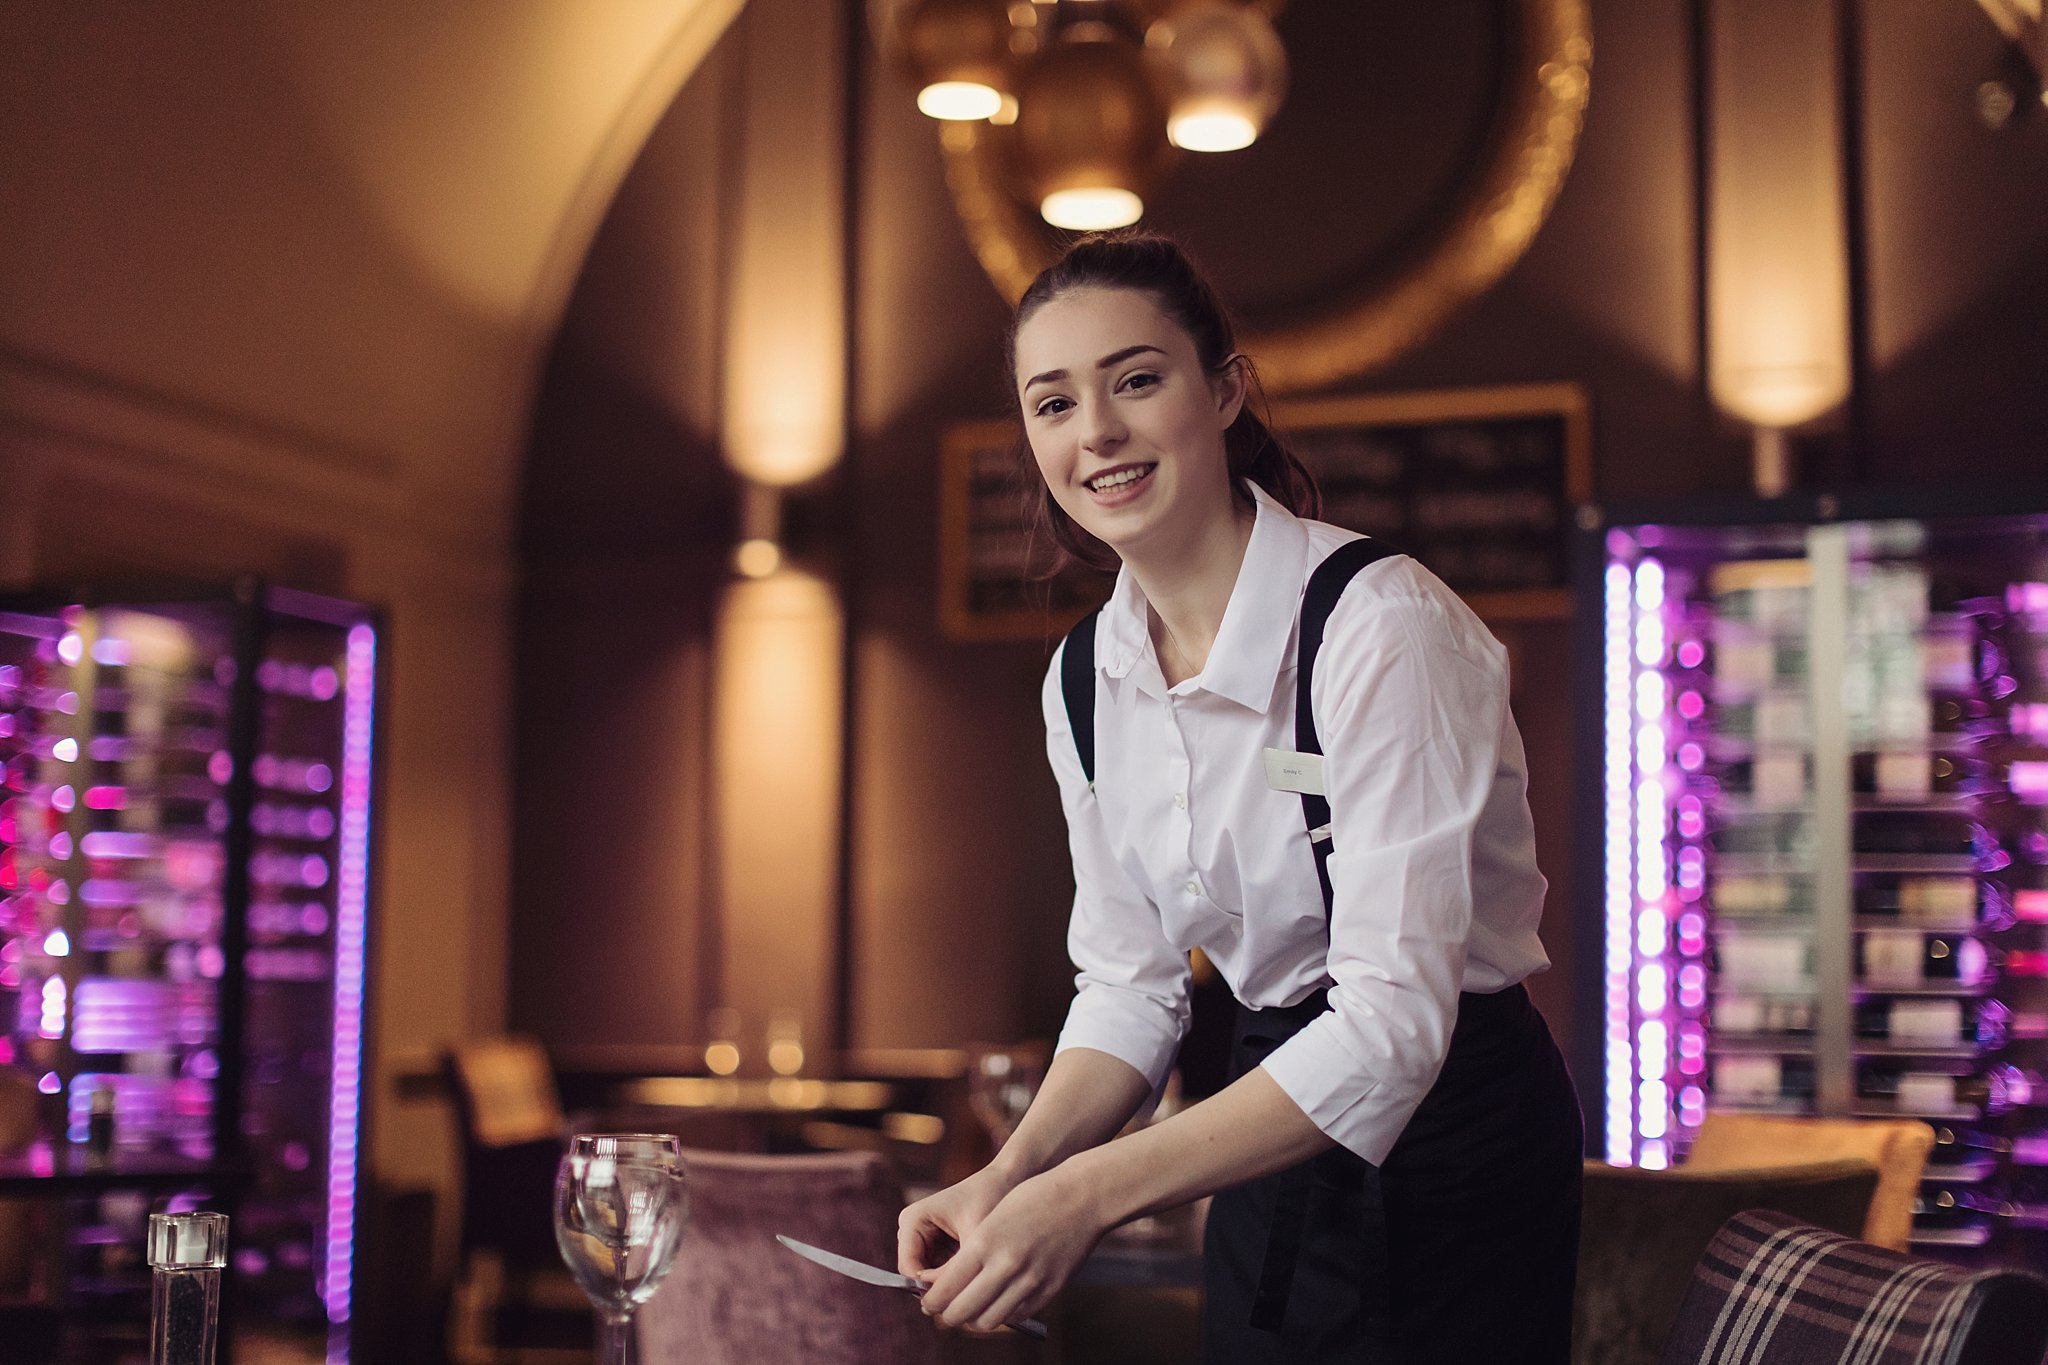 Waitress smiling whilst setting table